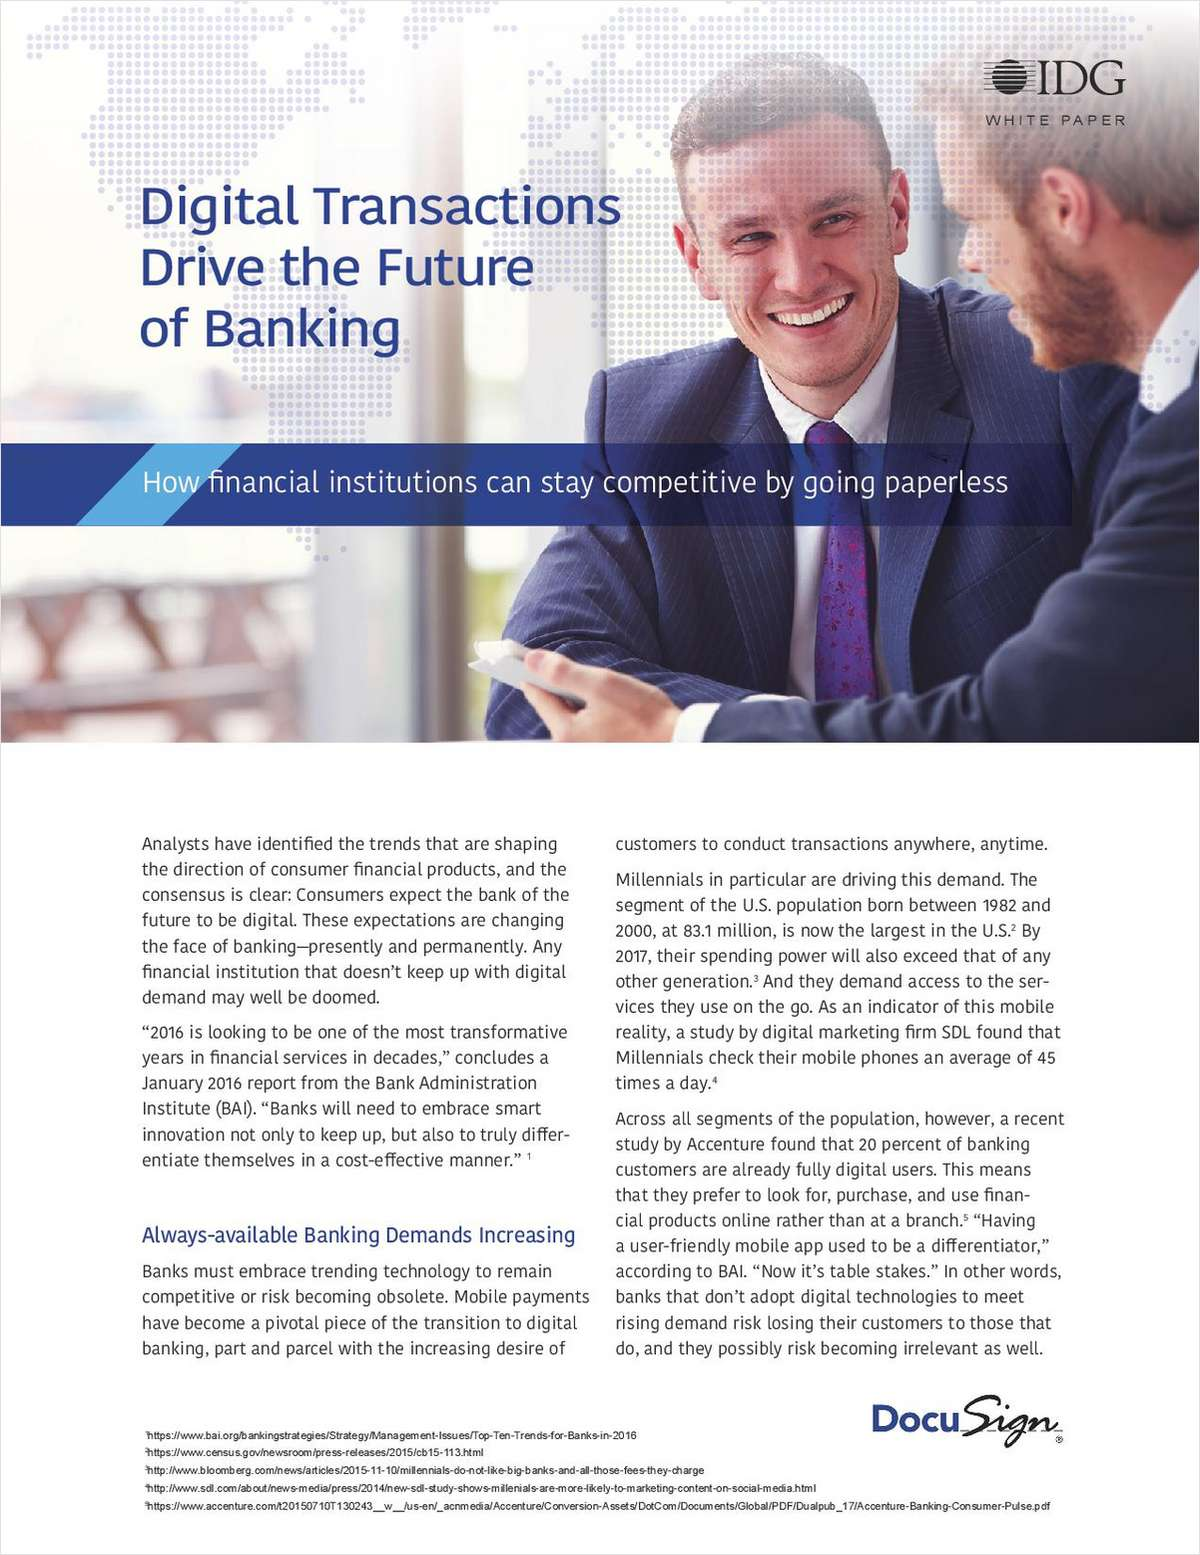 How Digital Transactions Drive the Future of Banking